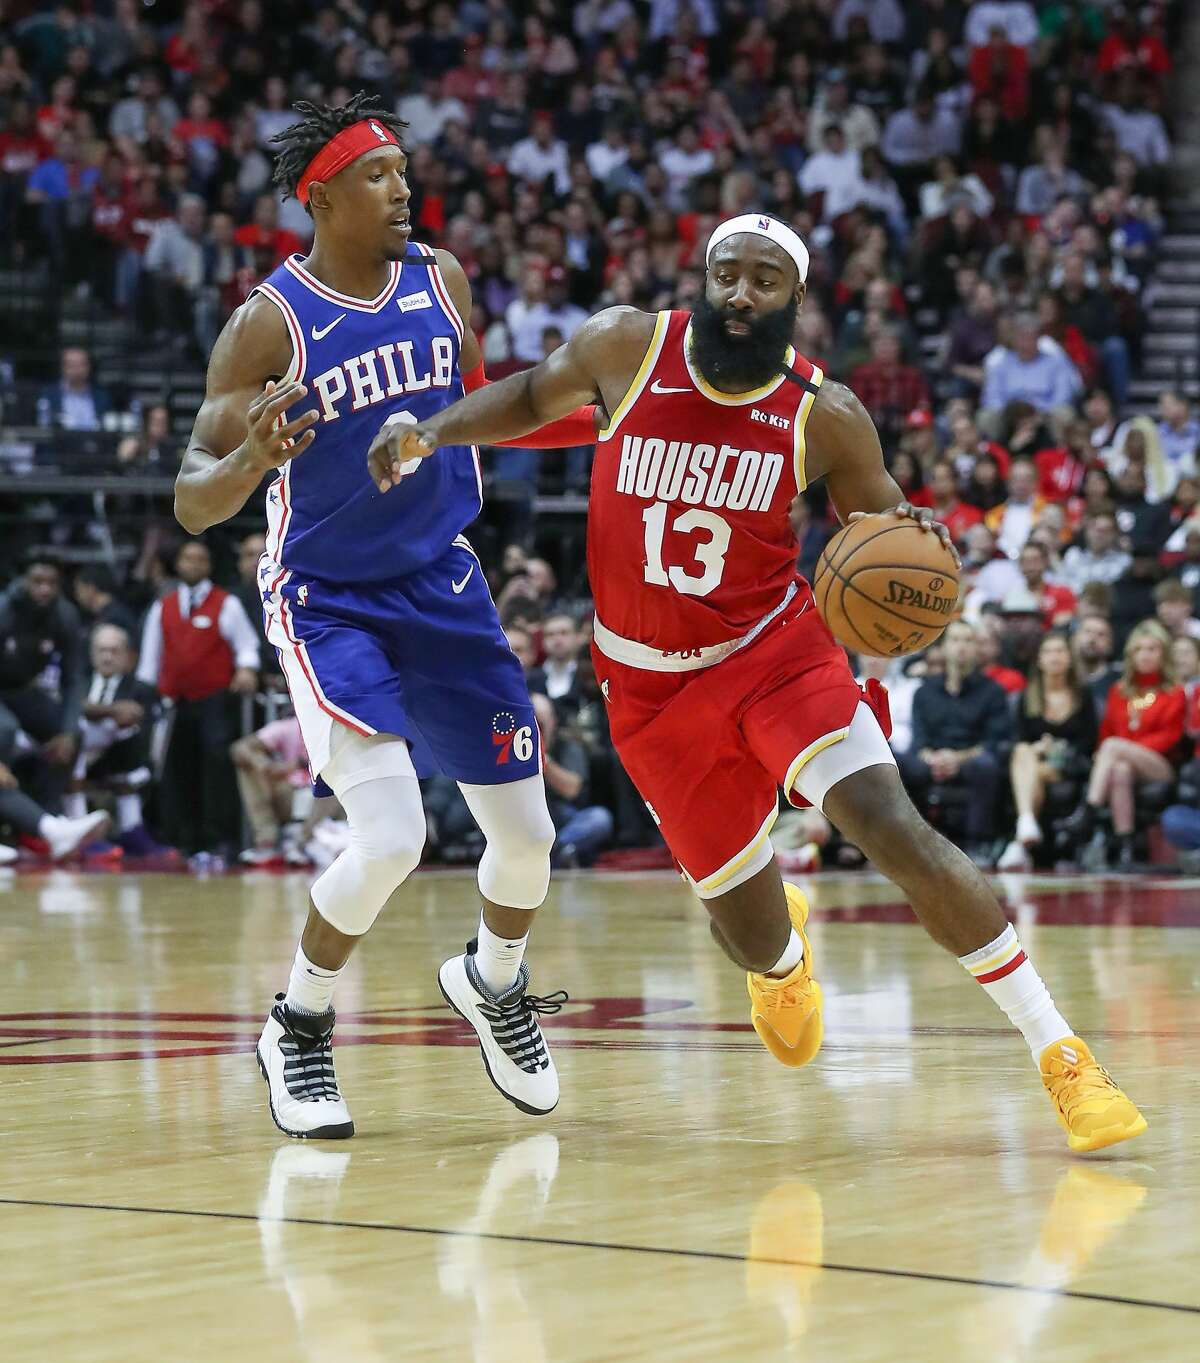 Houston Rockets guard James Harden (13) drives around Philadelphia 76ers guard Josh Richardson (0) during the 2nd half of an NBA basketball game at Toyota Center on Friday, Jan. 3, 2020, in Houston.